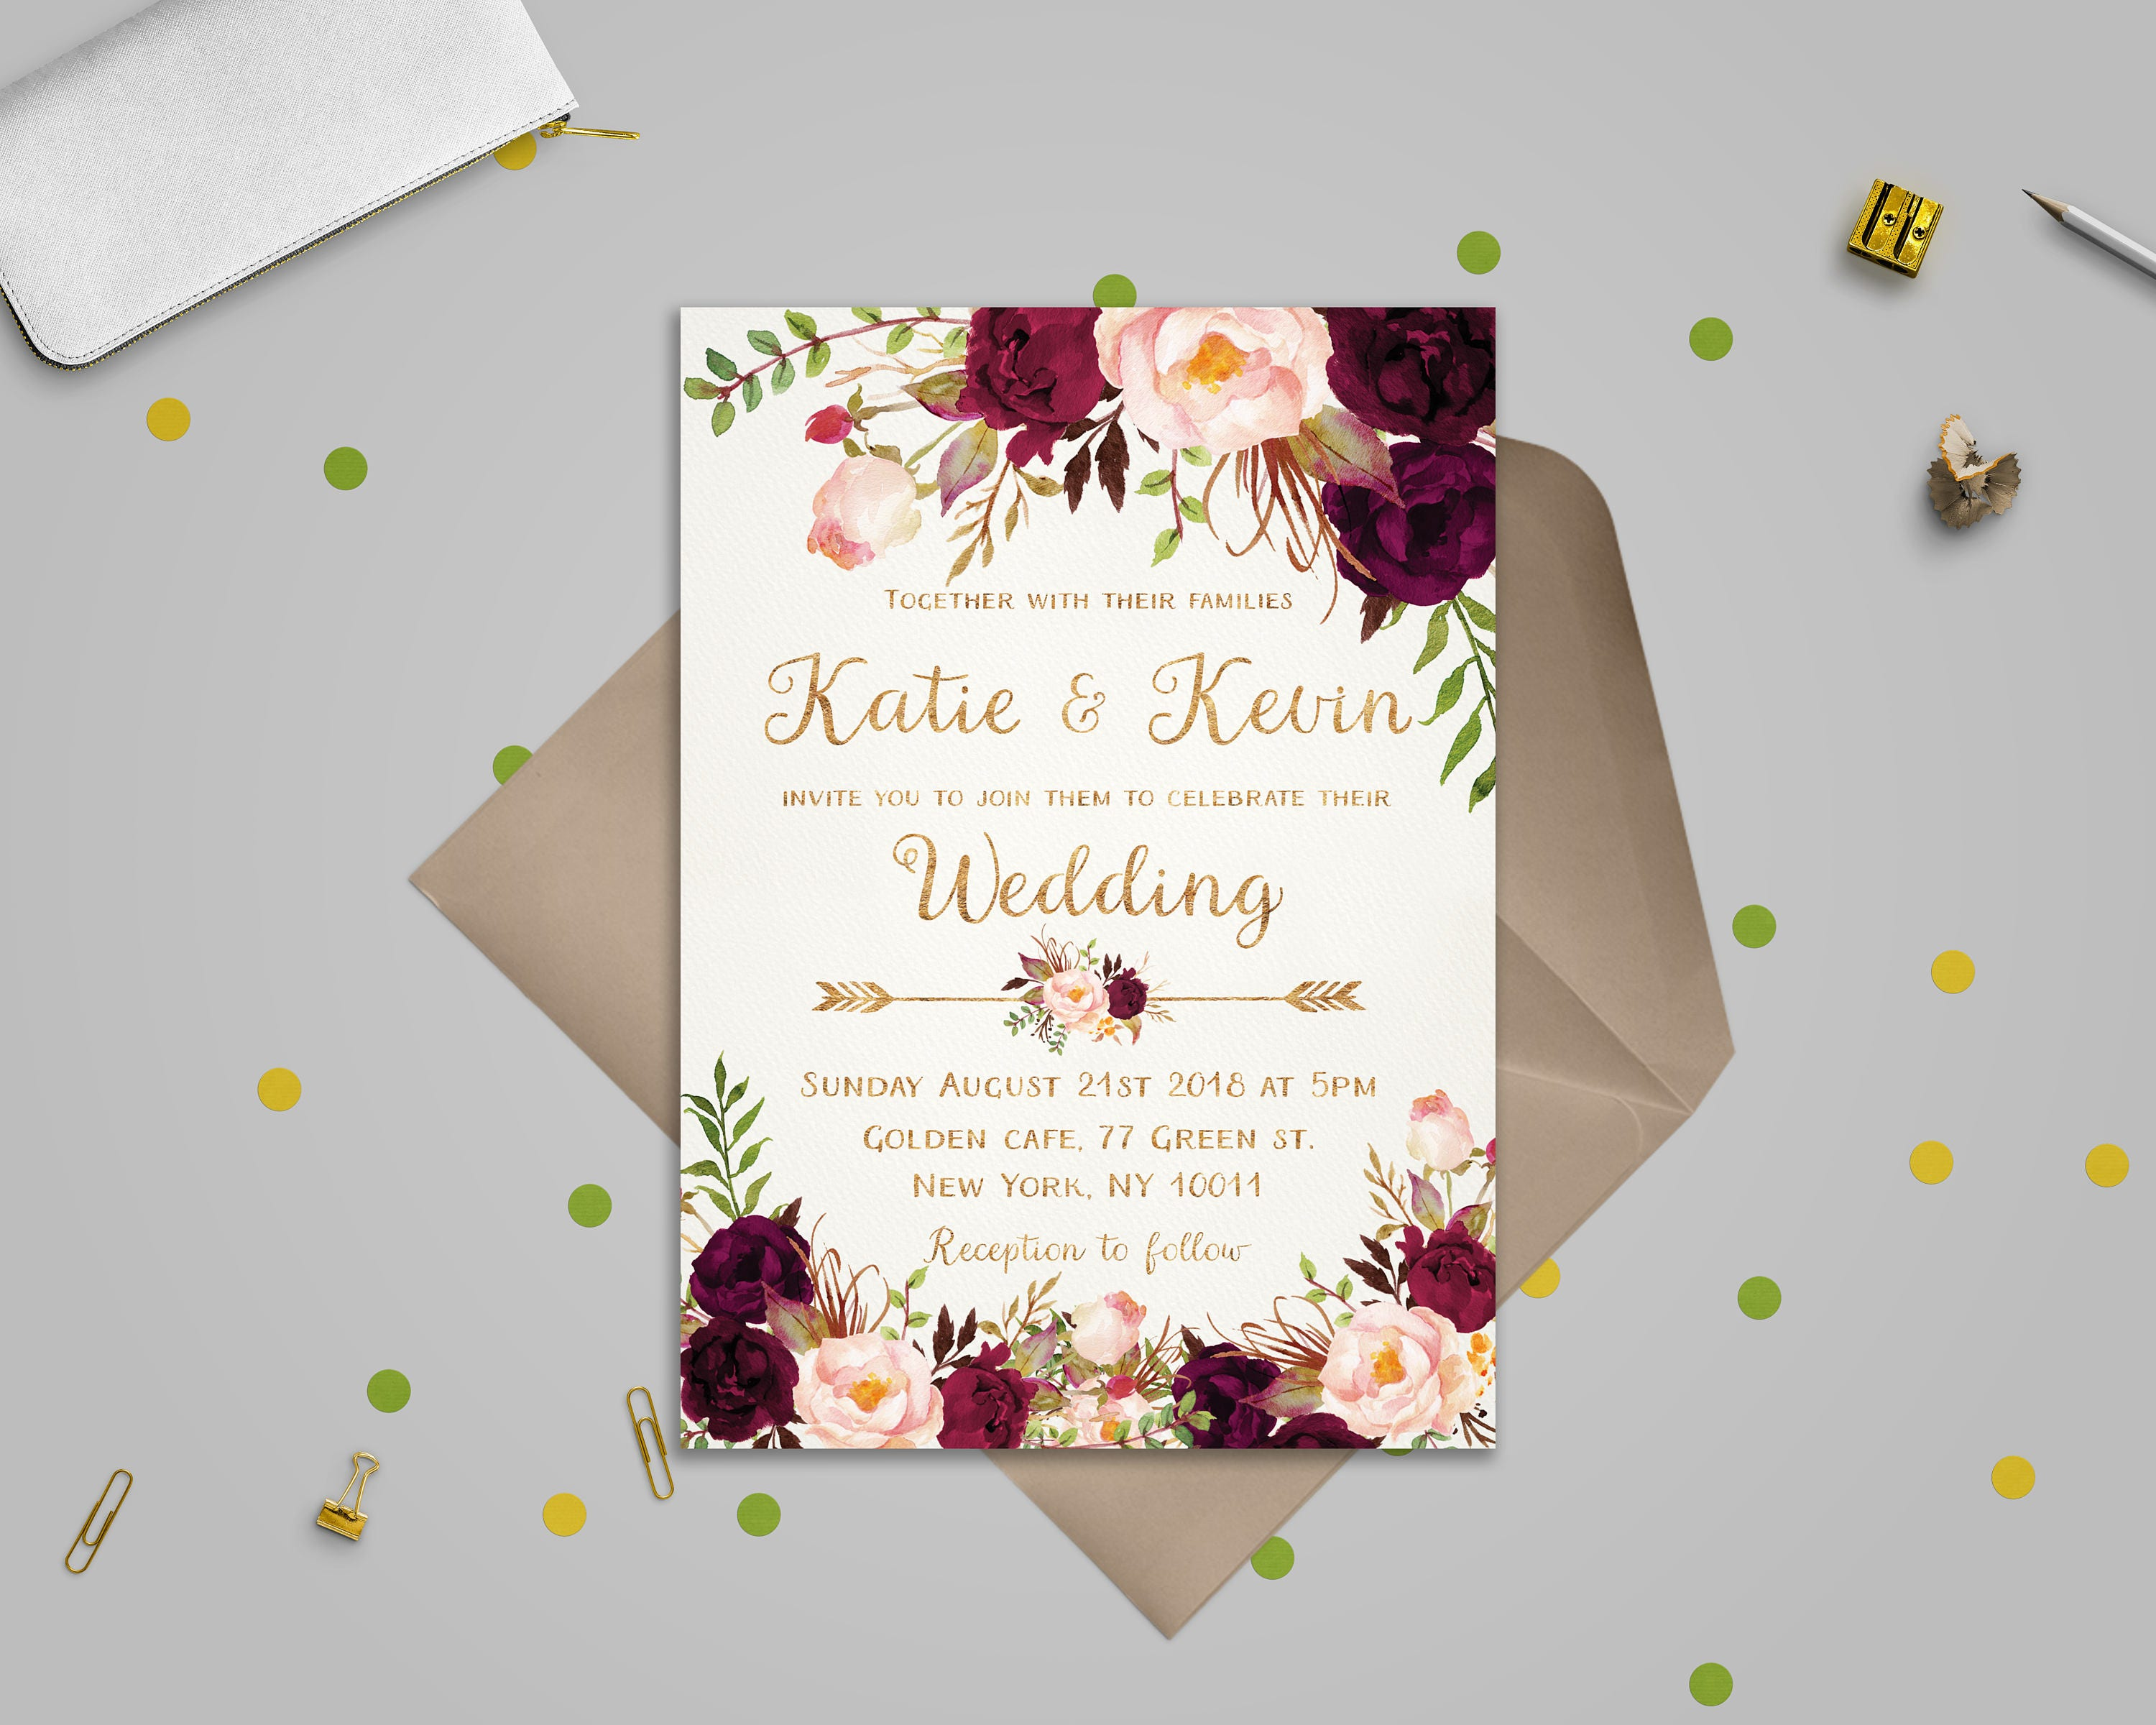 Resource image for etsy printable invitations